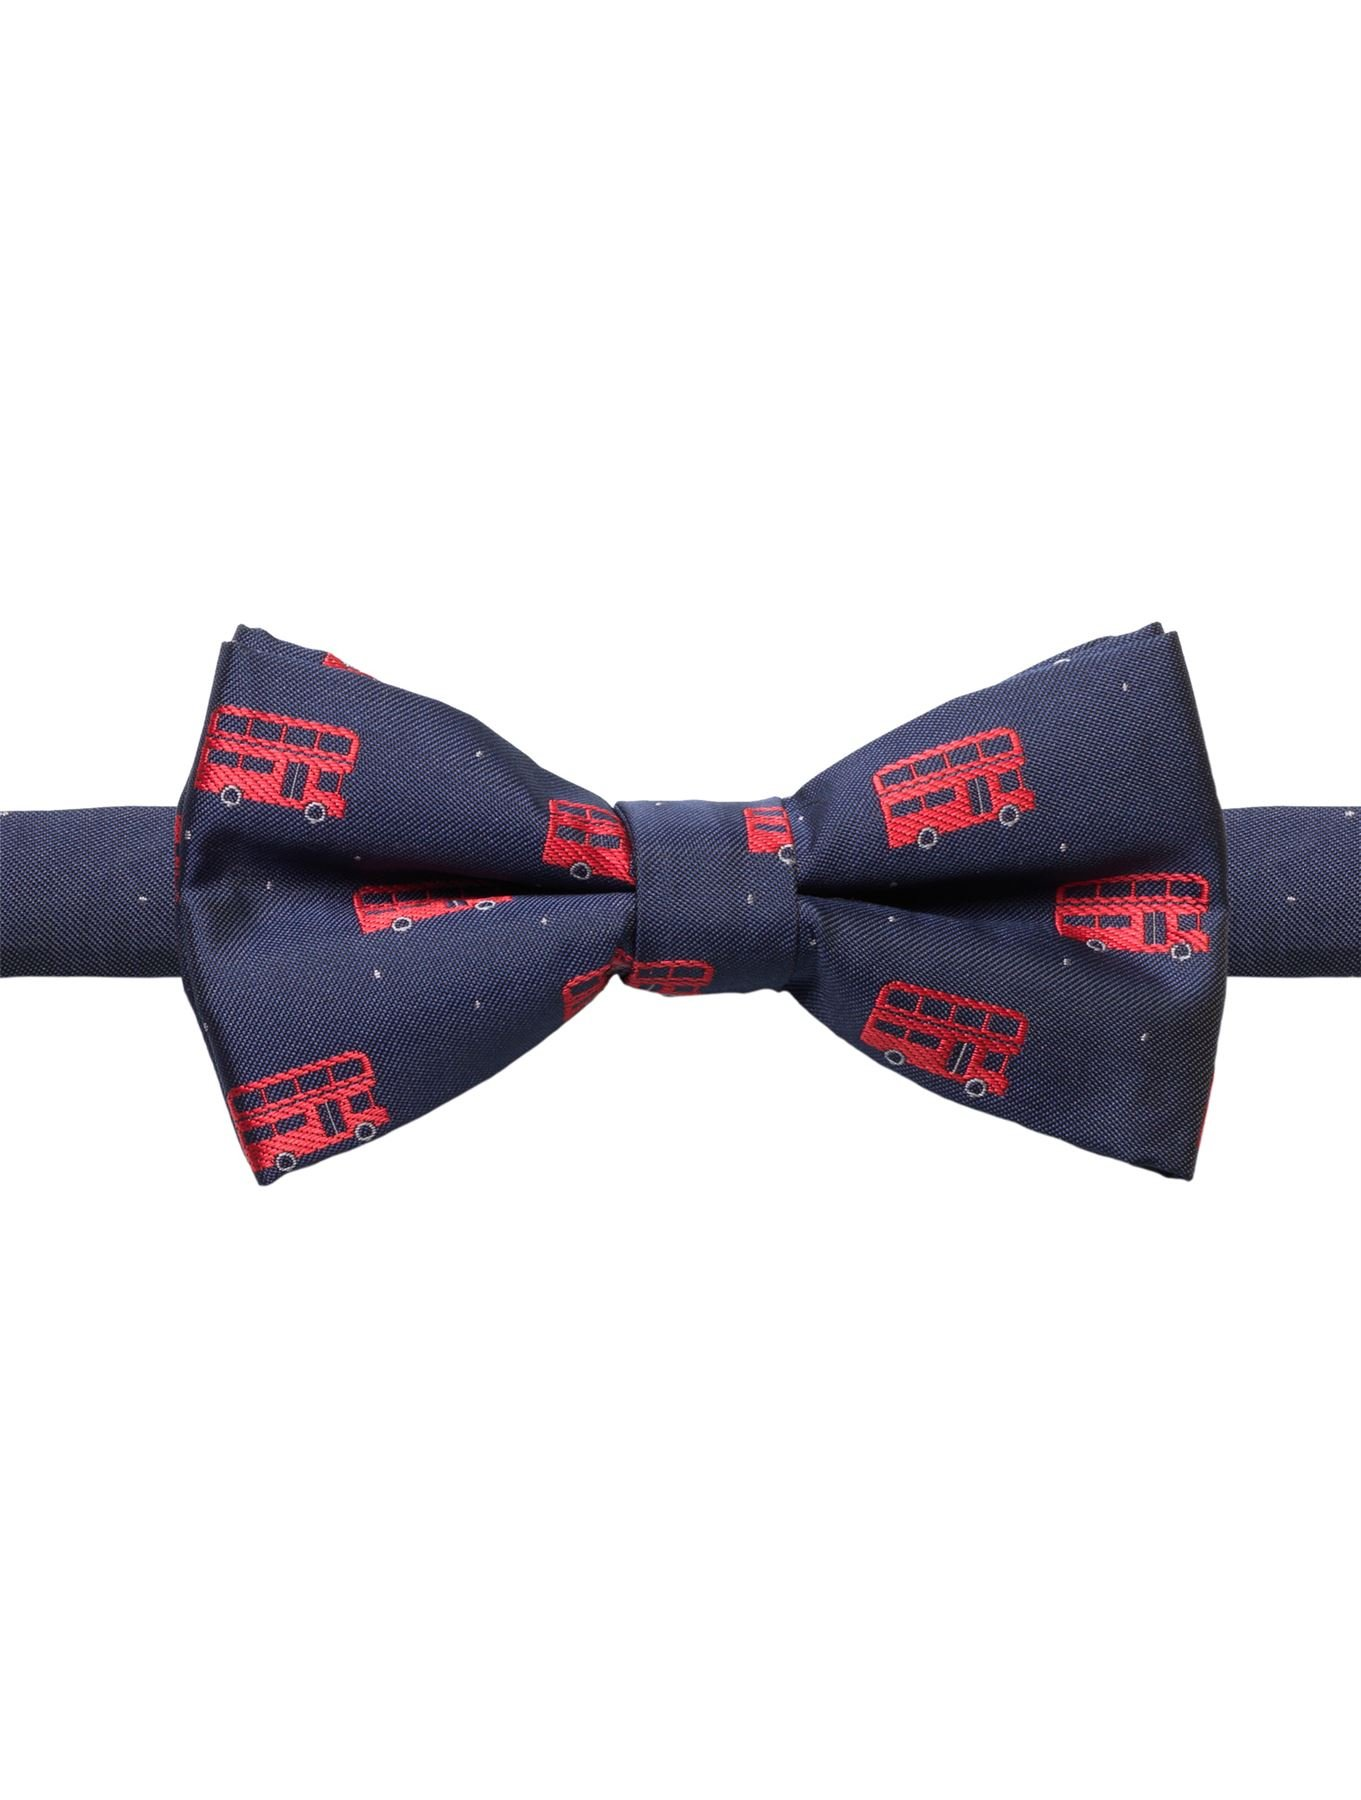 Paisley of London, Boys royal bus bow tie, one size